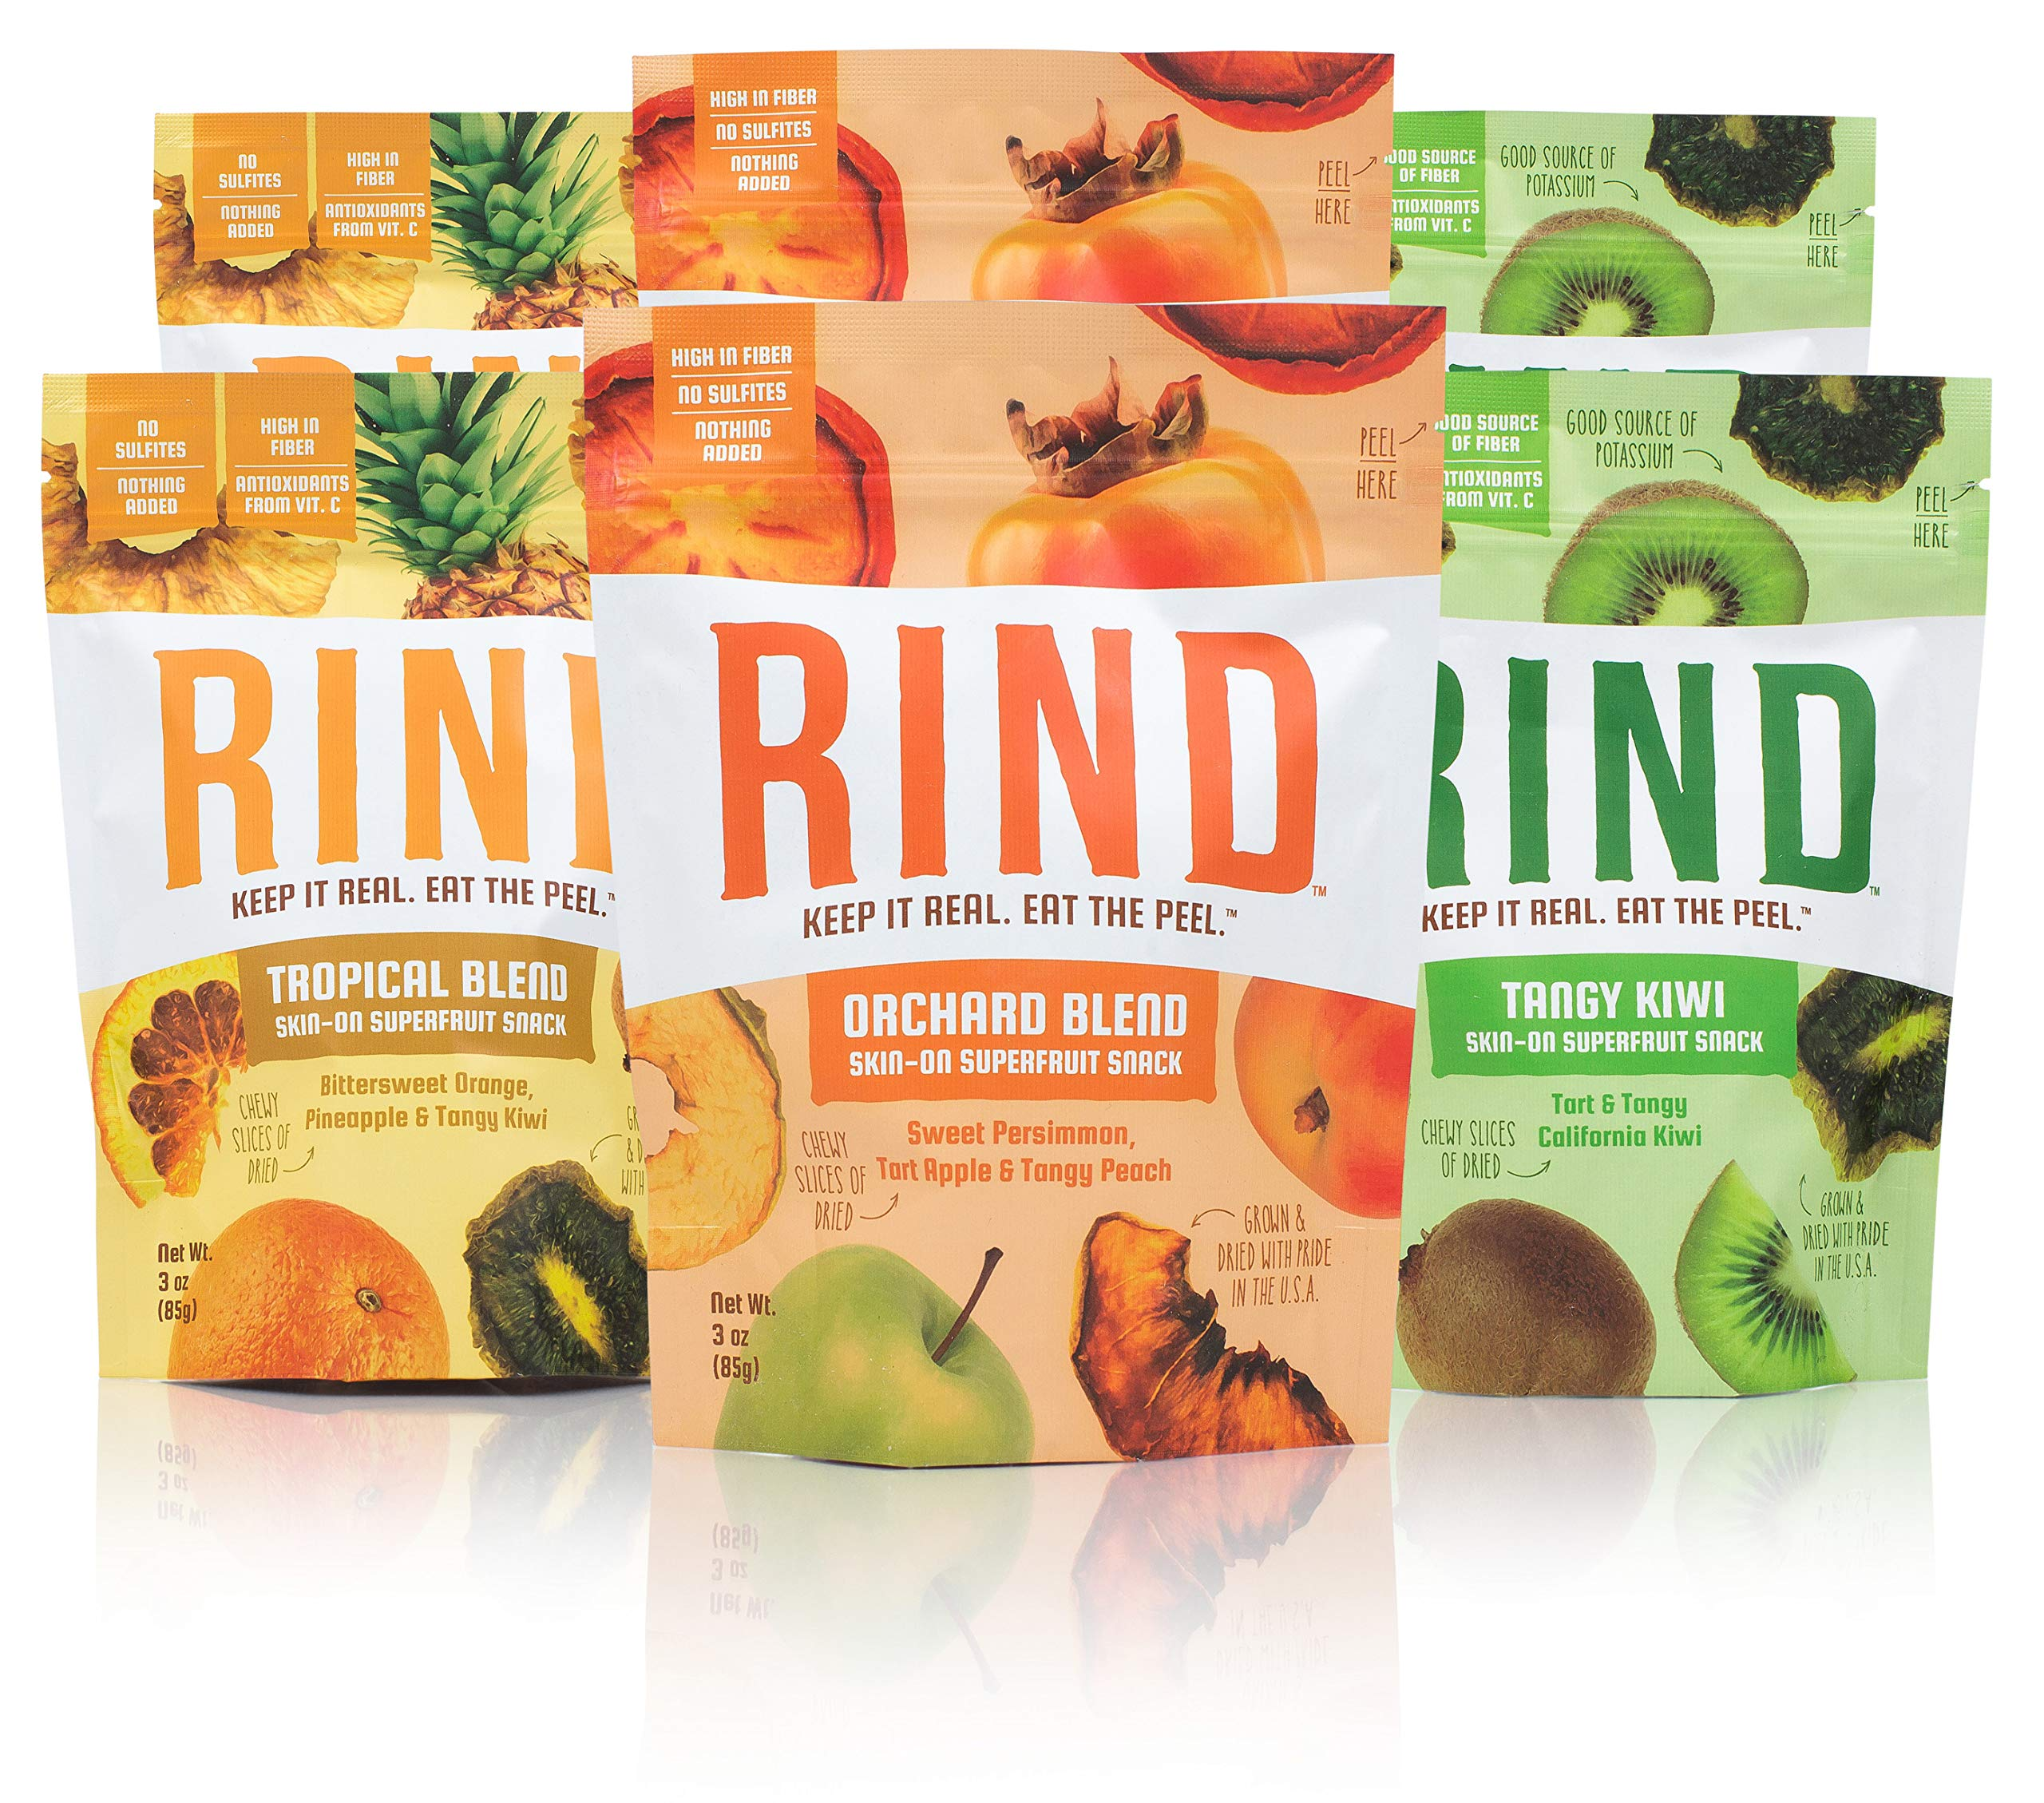 RIND Snacks Sun-Dried Skin-On Superfruit Snack Variety Pack, Tropical Blend, Orchard Blend, and Tangy Kiwi, High Fiber, No Sulfites, Antioxidants from Vitamin C, Gluten-Free, 3oz Pouch, Pack of 6 by RIND Snacks